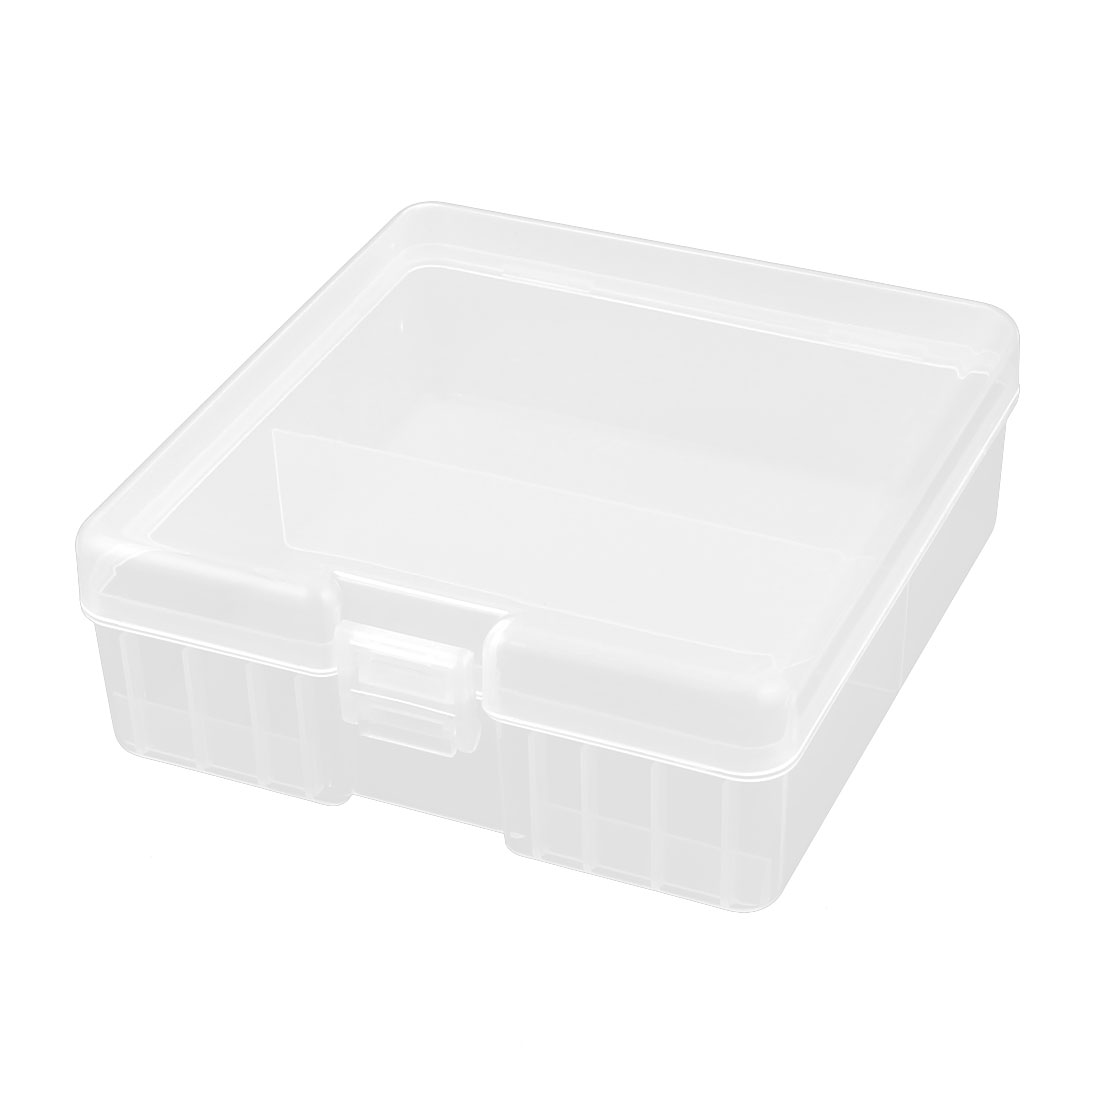 Hard Plastic Case Holder Storage Box Container for 100 x AA Battery